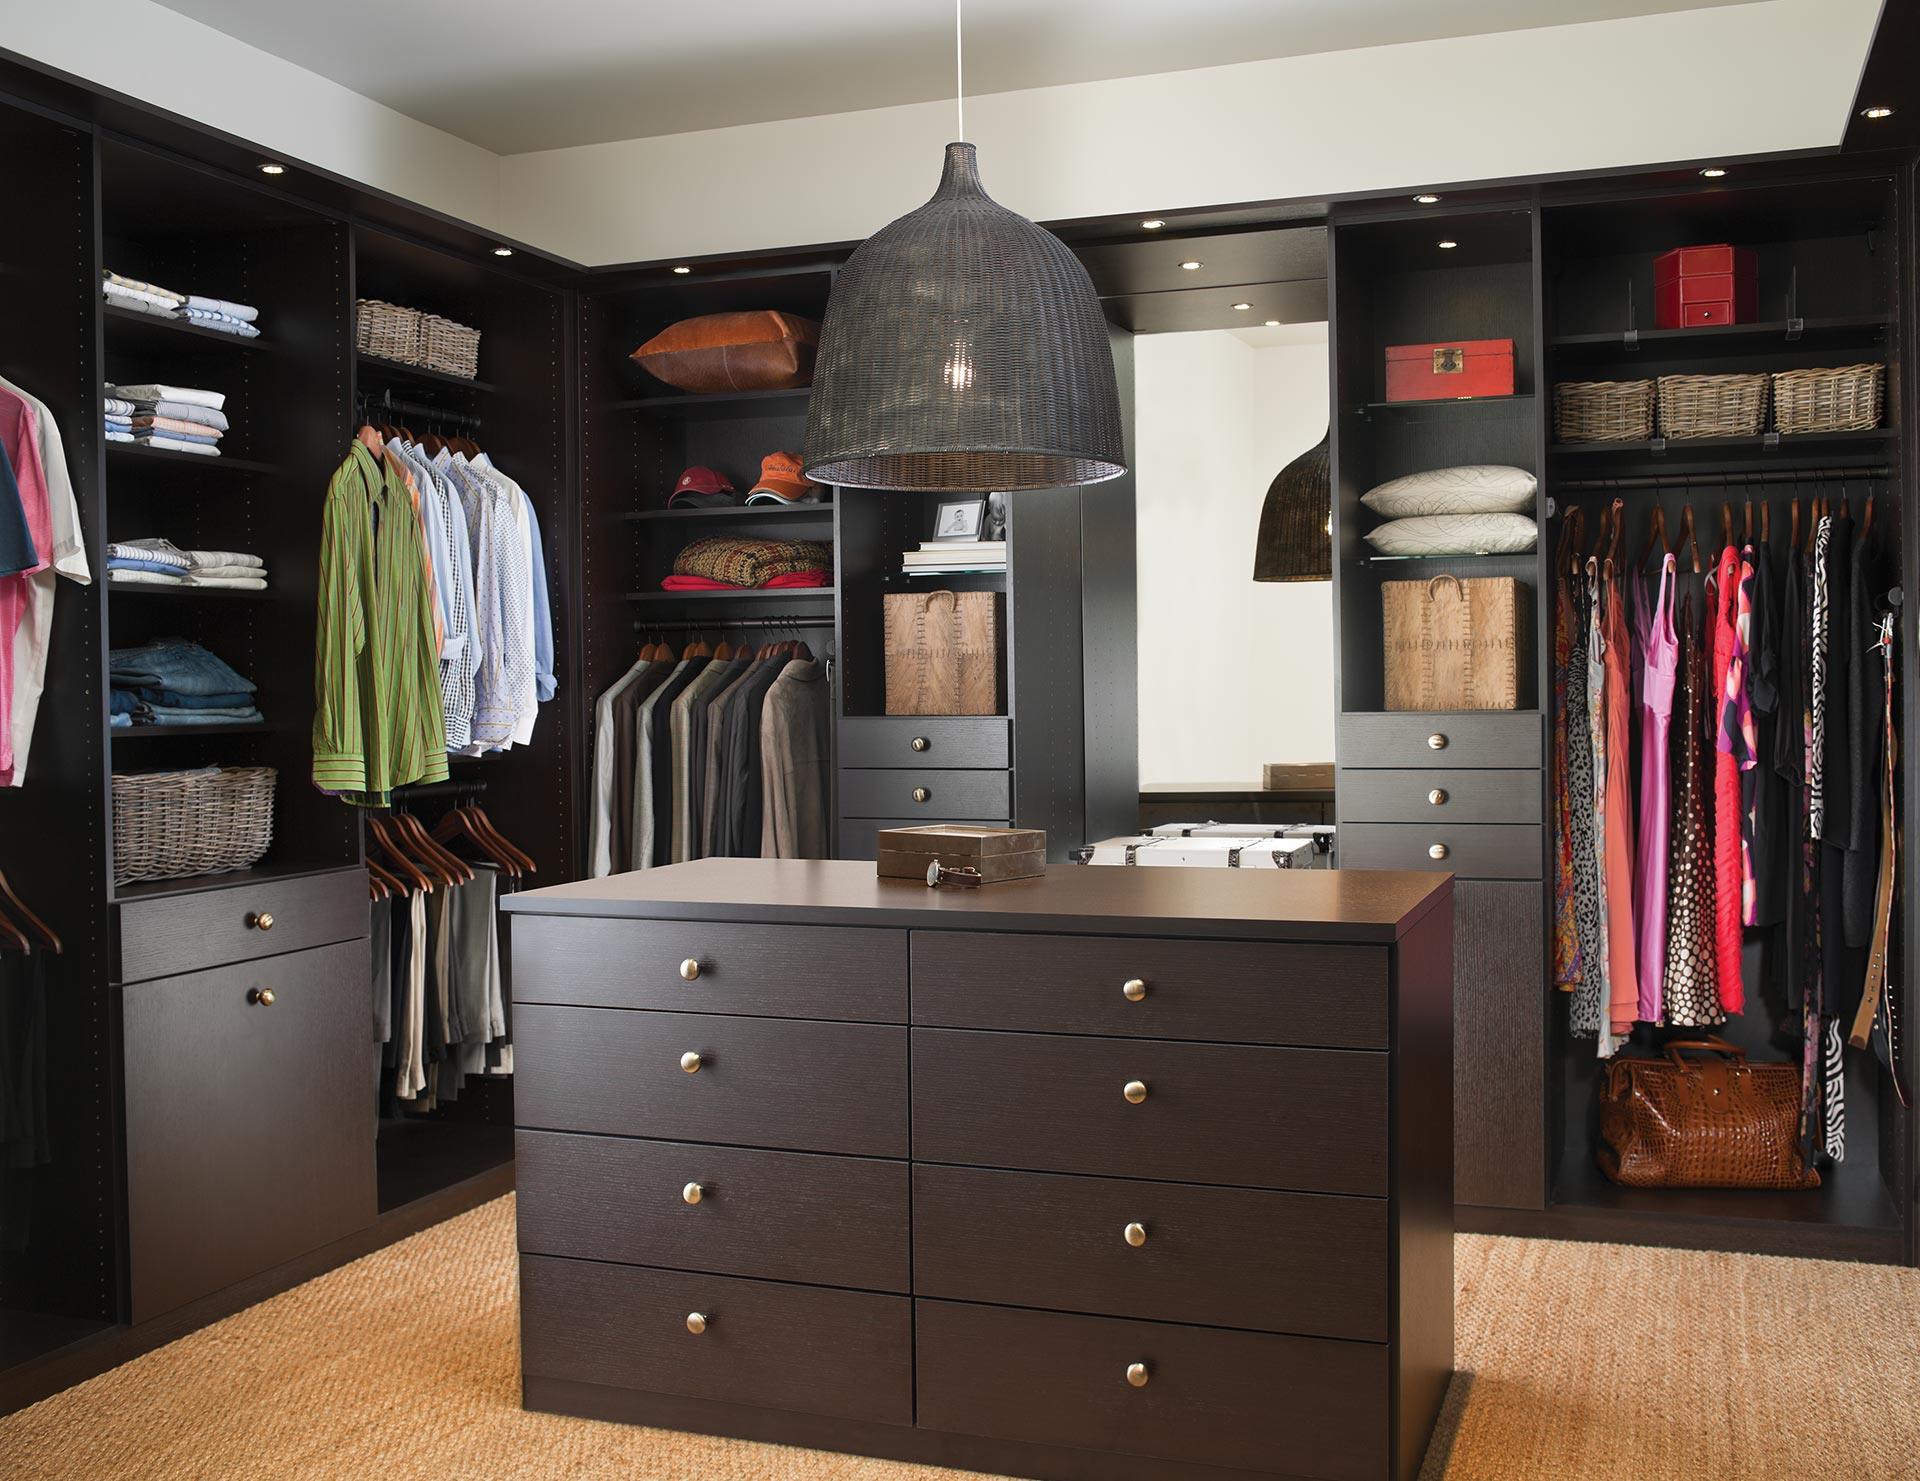 California Closets - Lee Master Walk in Closet Storage Solution